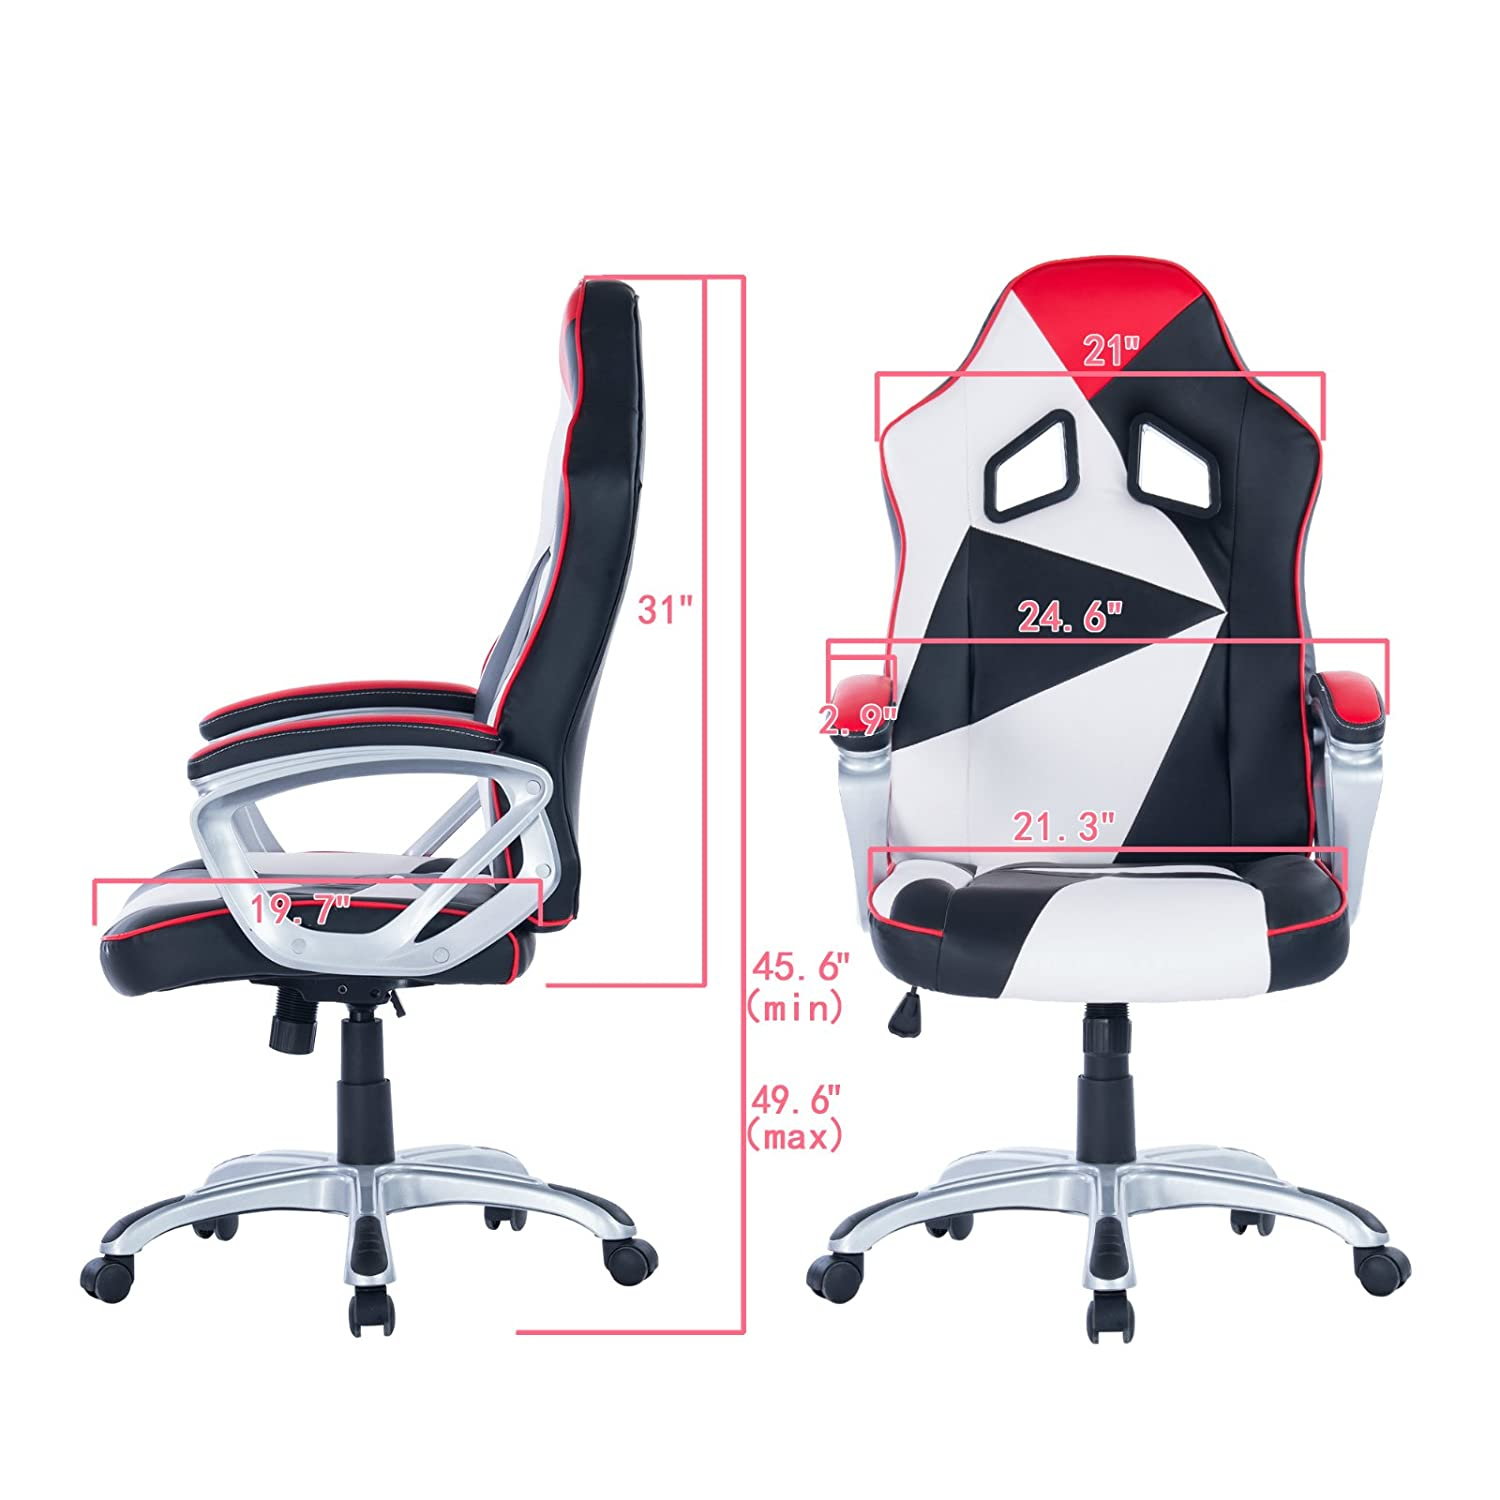 Amazon.com: Killbee Large Gaming Chair Swivel Executive Office Chair Adjustable High-Back Desk Chair Leather Bucket Seat (Black and White): Kitchen & Dining